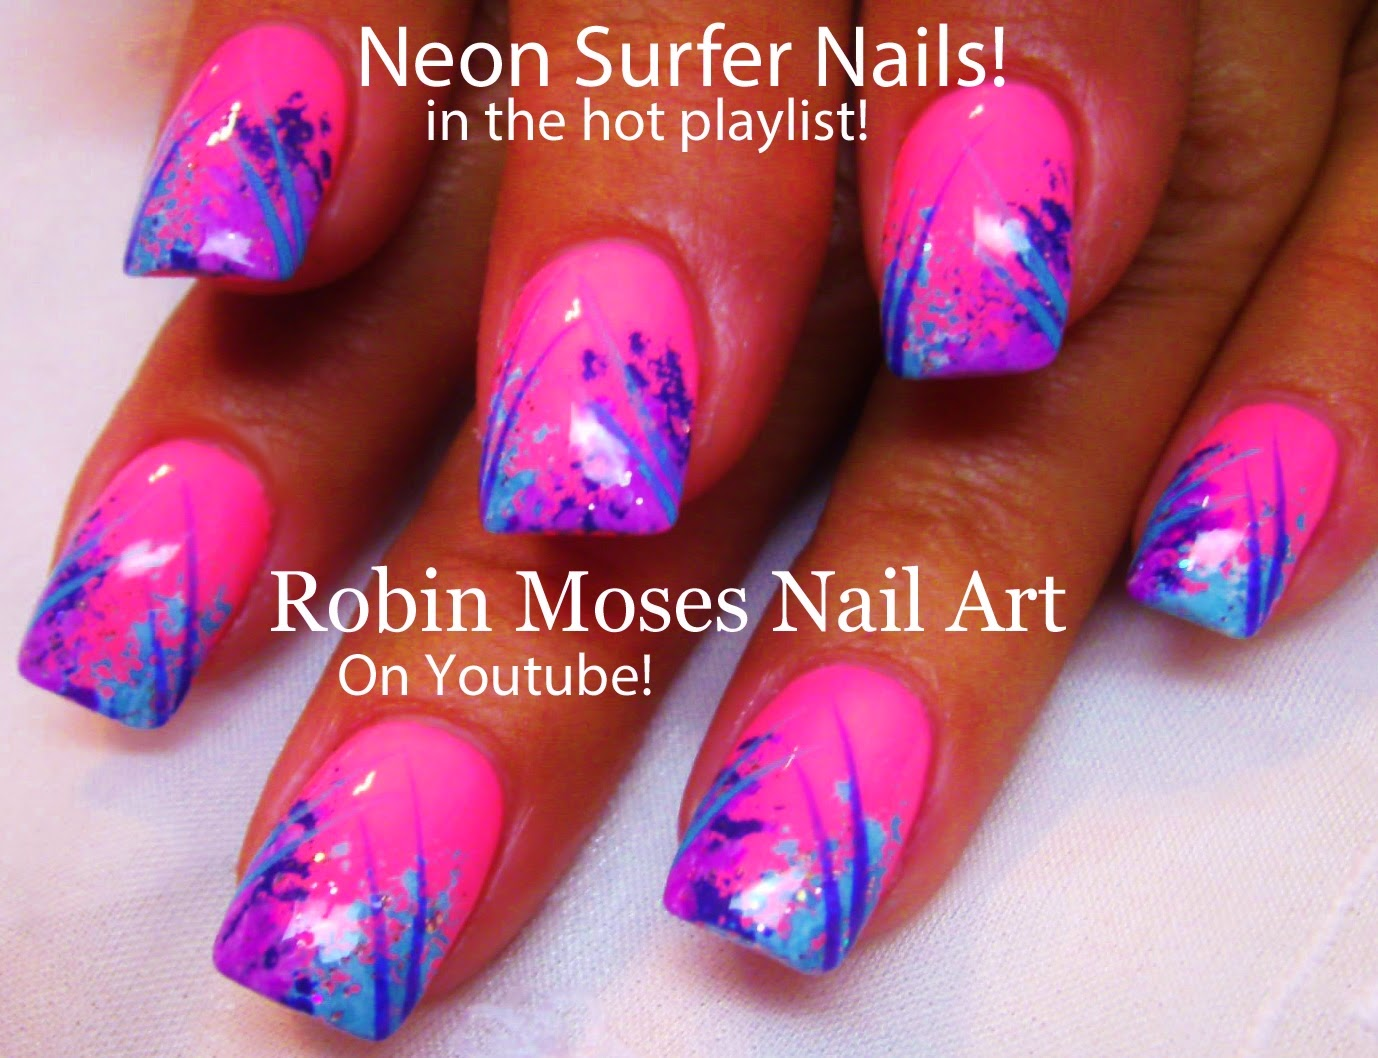 Robin moses nail art neon nails neon pink nails neon nail neon nails neon pink nails neon nail art nail art sponge nail art surfer nails summer nails easy summer nails summer designs diy nails prinsesfo Choice Image